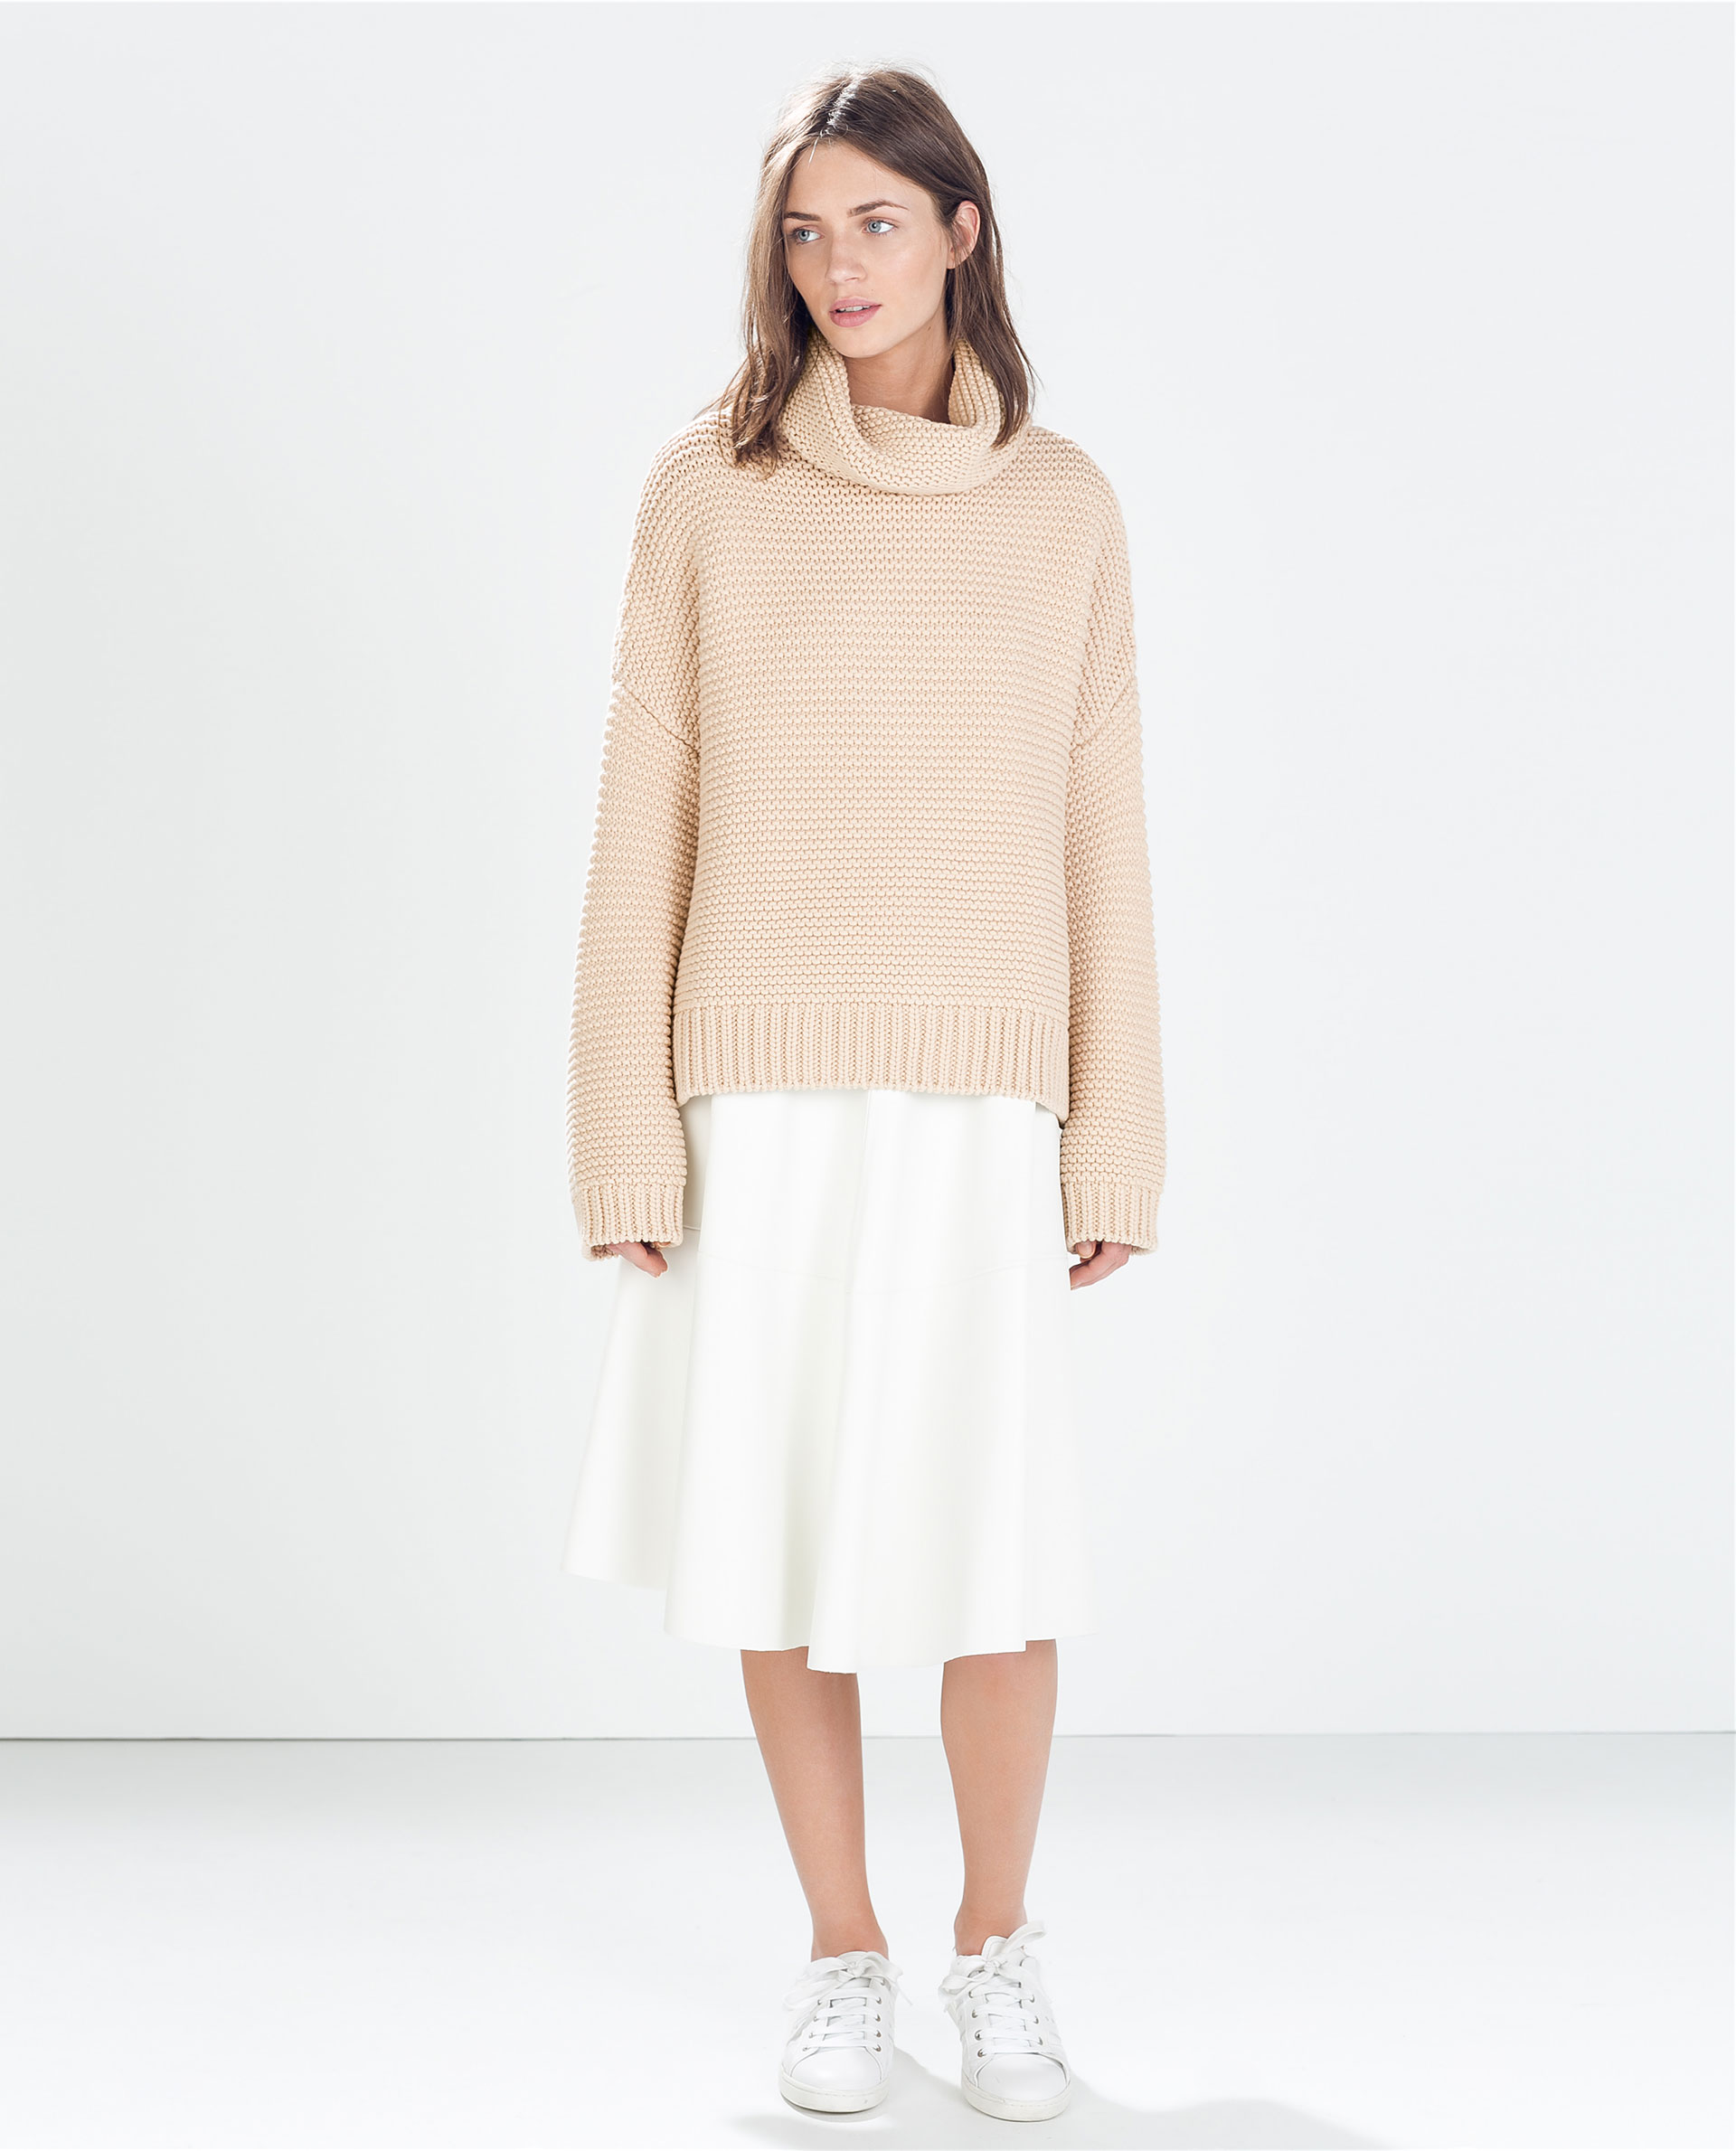 Zara Oversized Sweater.jpg